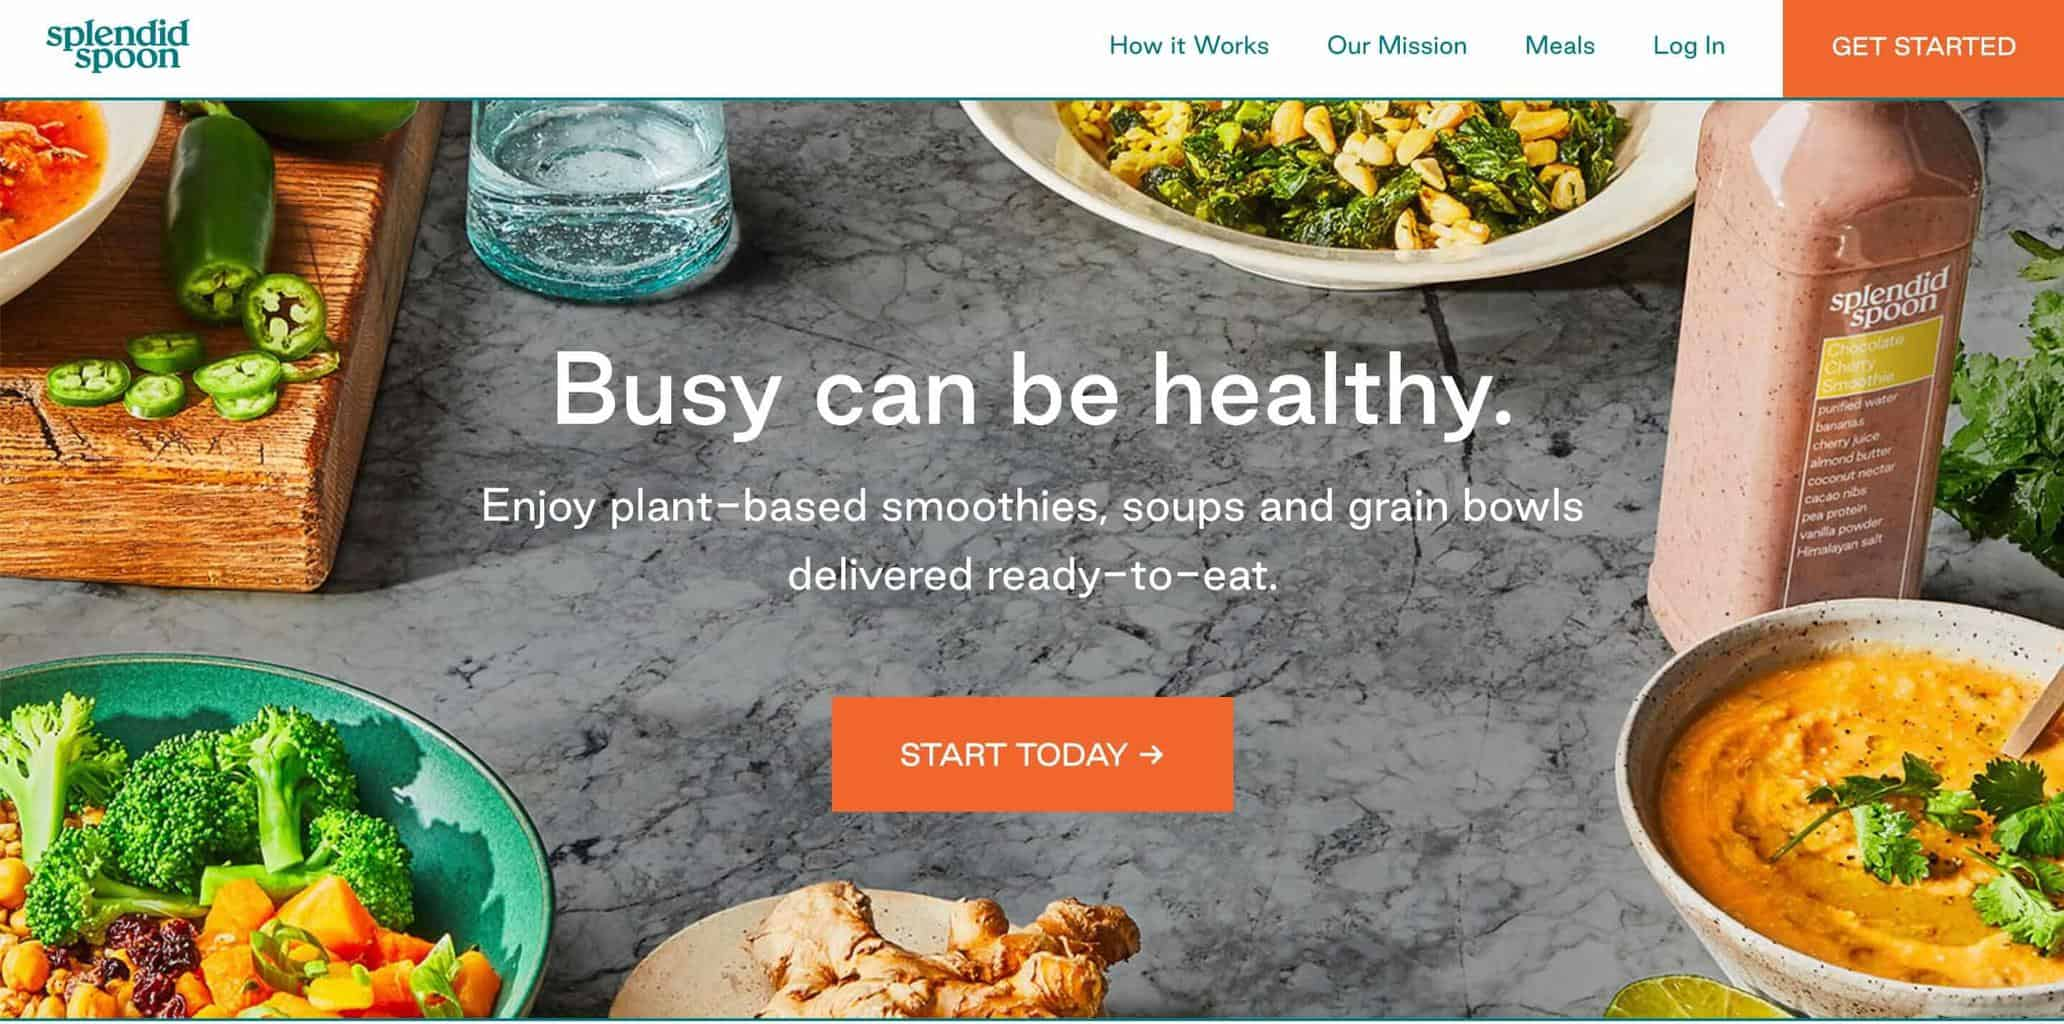 Screenshot of Splendid Spoon website showing table with smoothie, veggie bowls and dip on it